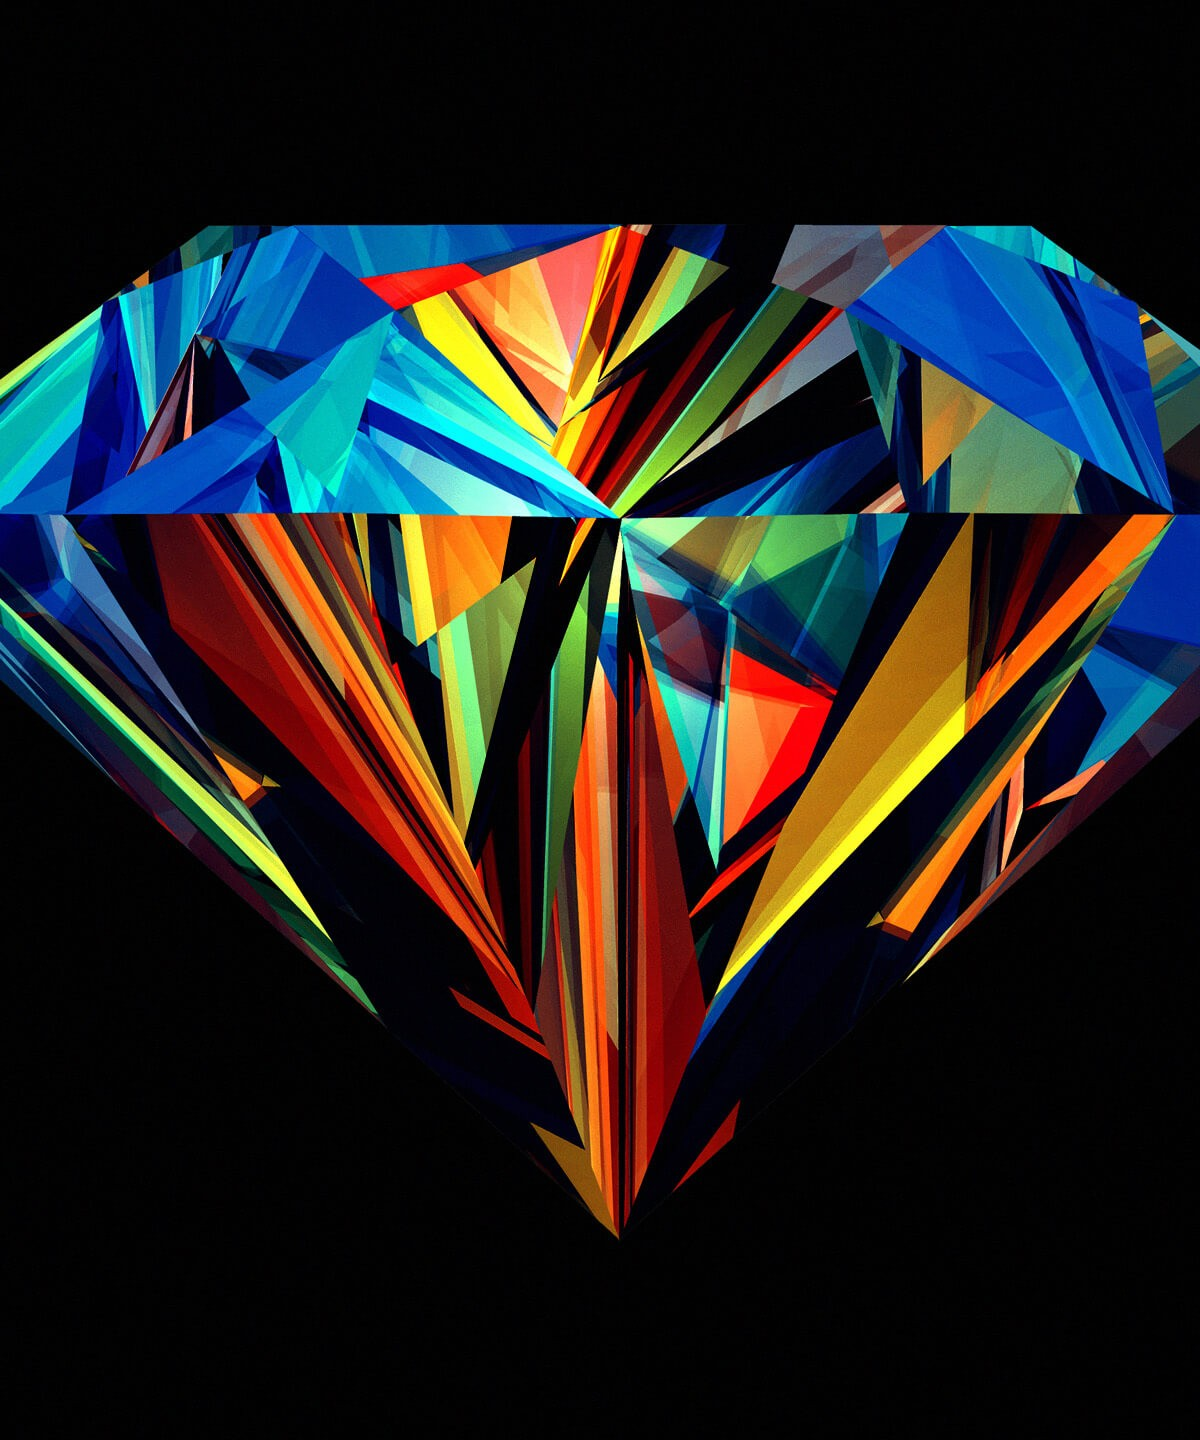 Colorful Diamond HD wallpaper for Kindle Fire HDX   HDwallpapersnet 1200x1440